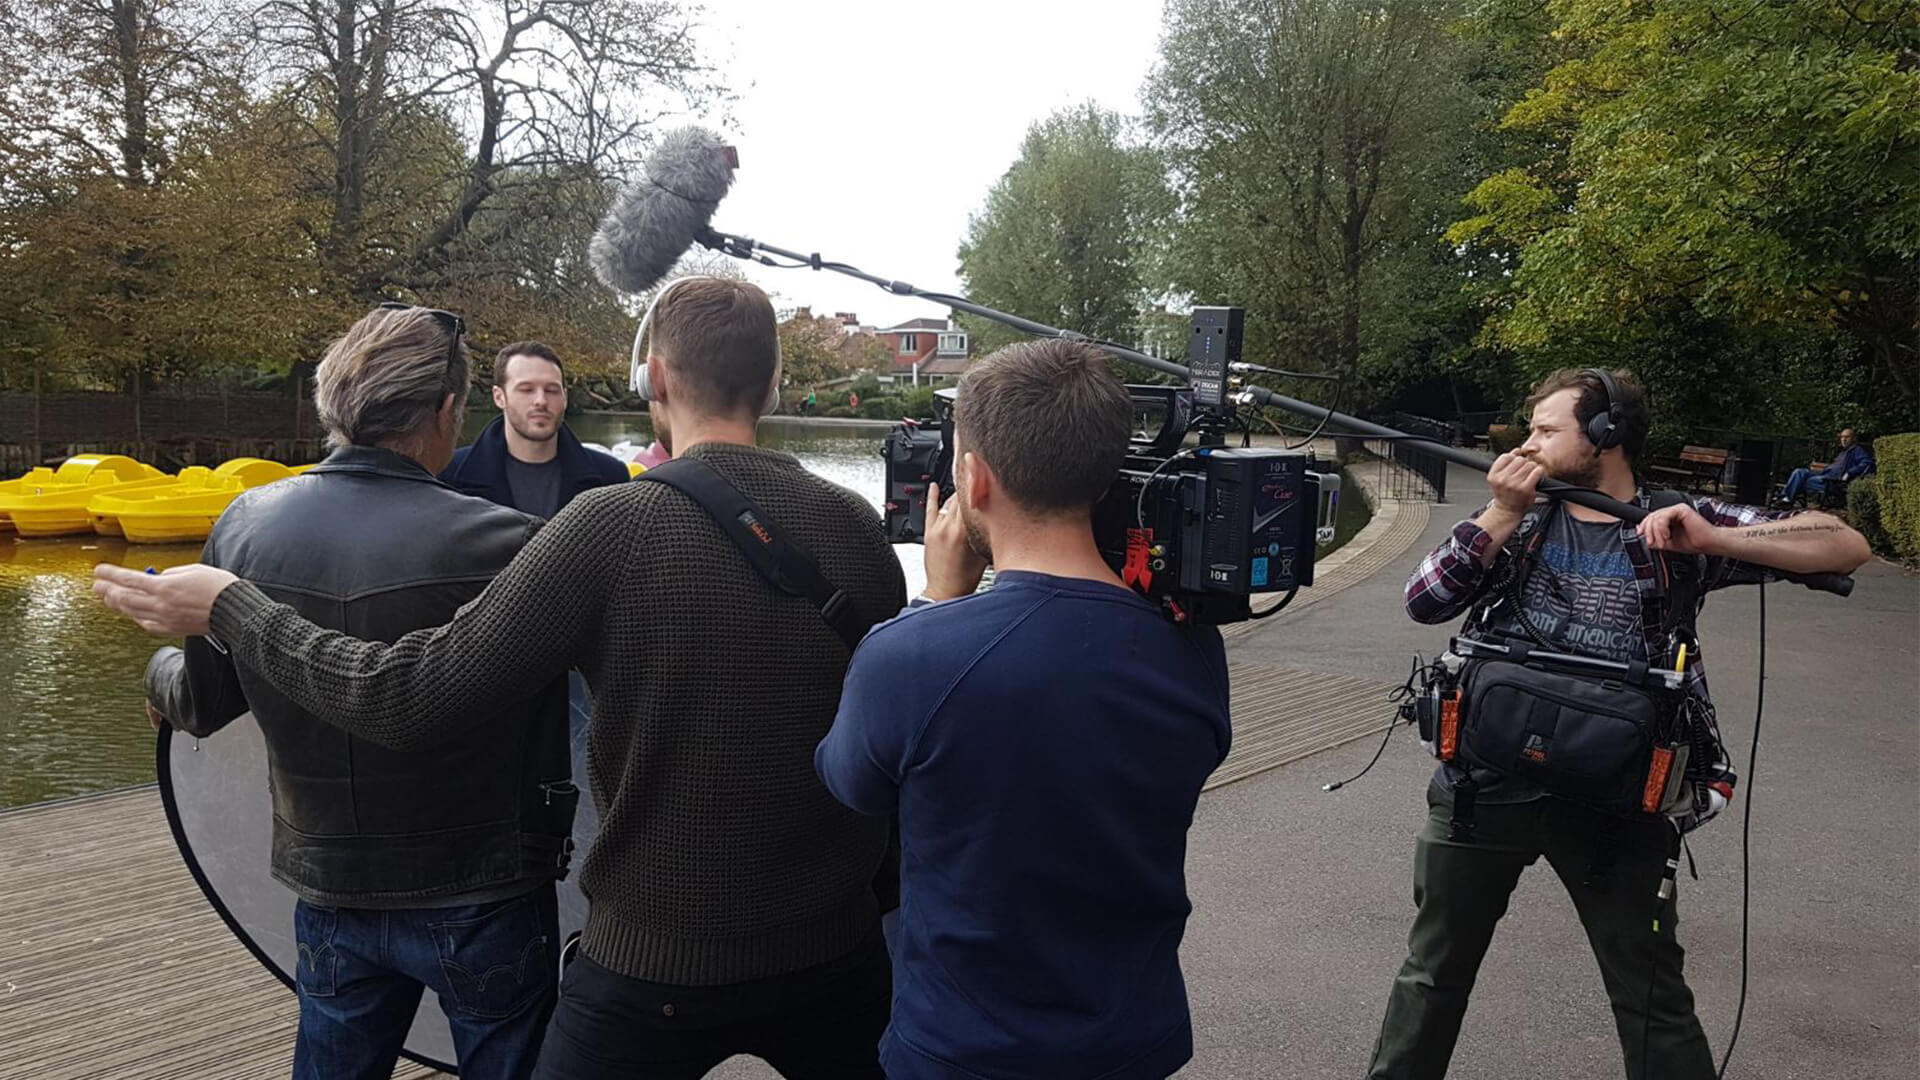 aaron calvert e4 big group interview at a boating lake about edinburgh fringe magic show declassified